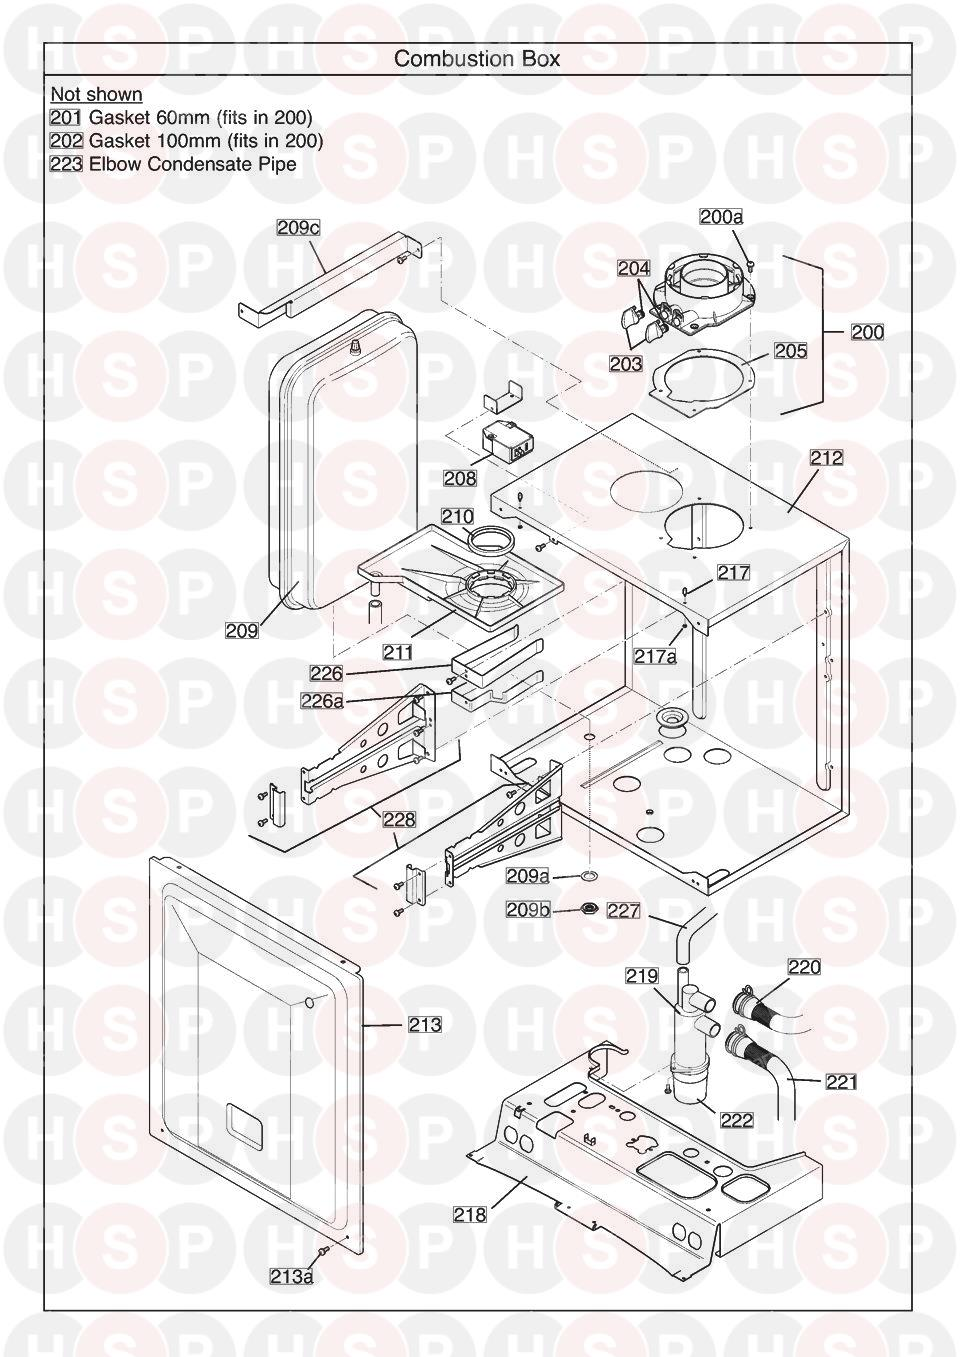 COMBUSTION BOX diagram for Baxi DUO TEC 33 Combi ErP (SERIAL NO. ENDING BC ISSUE 2)